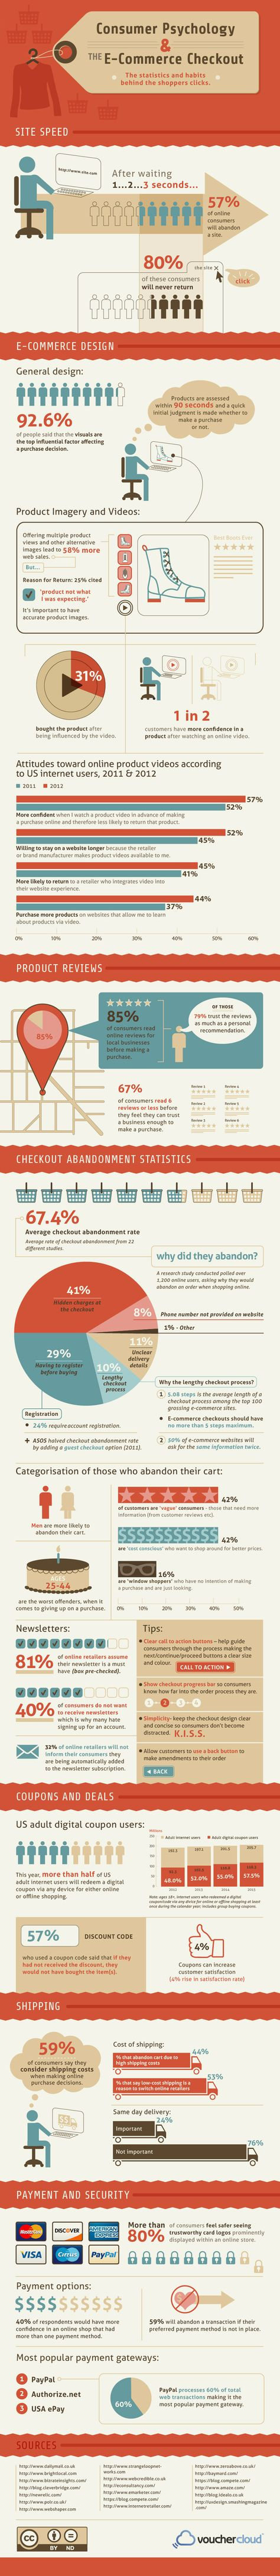 Consumer Psychology and the E-Commerce Checkout  #Infographic #eCommerce #Marketing